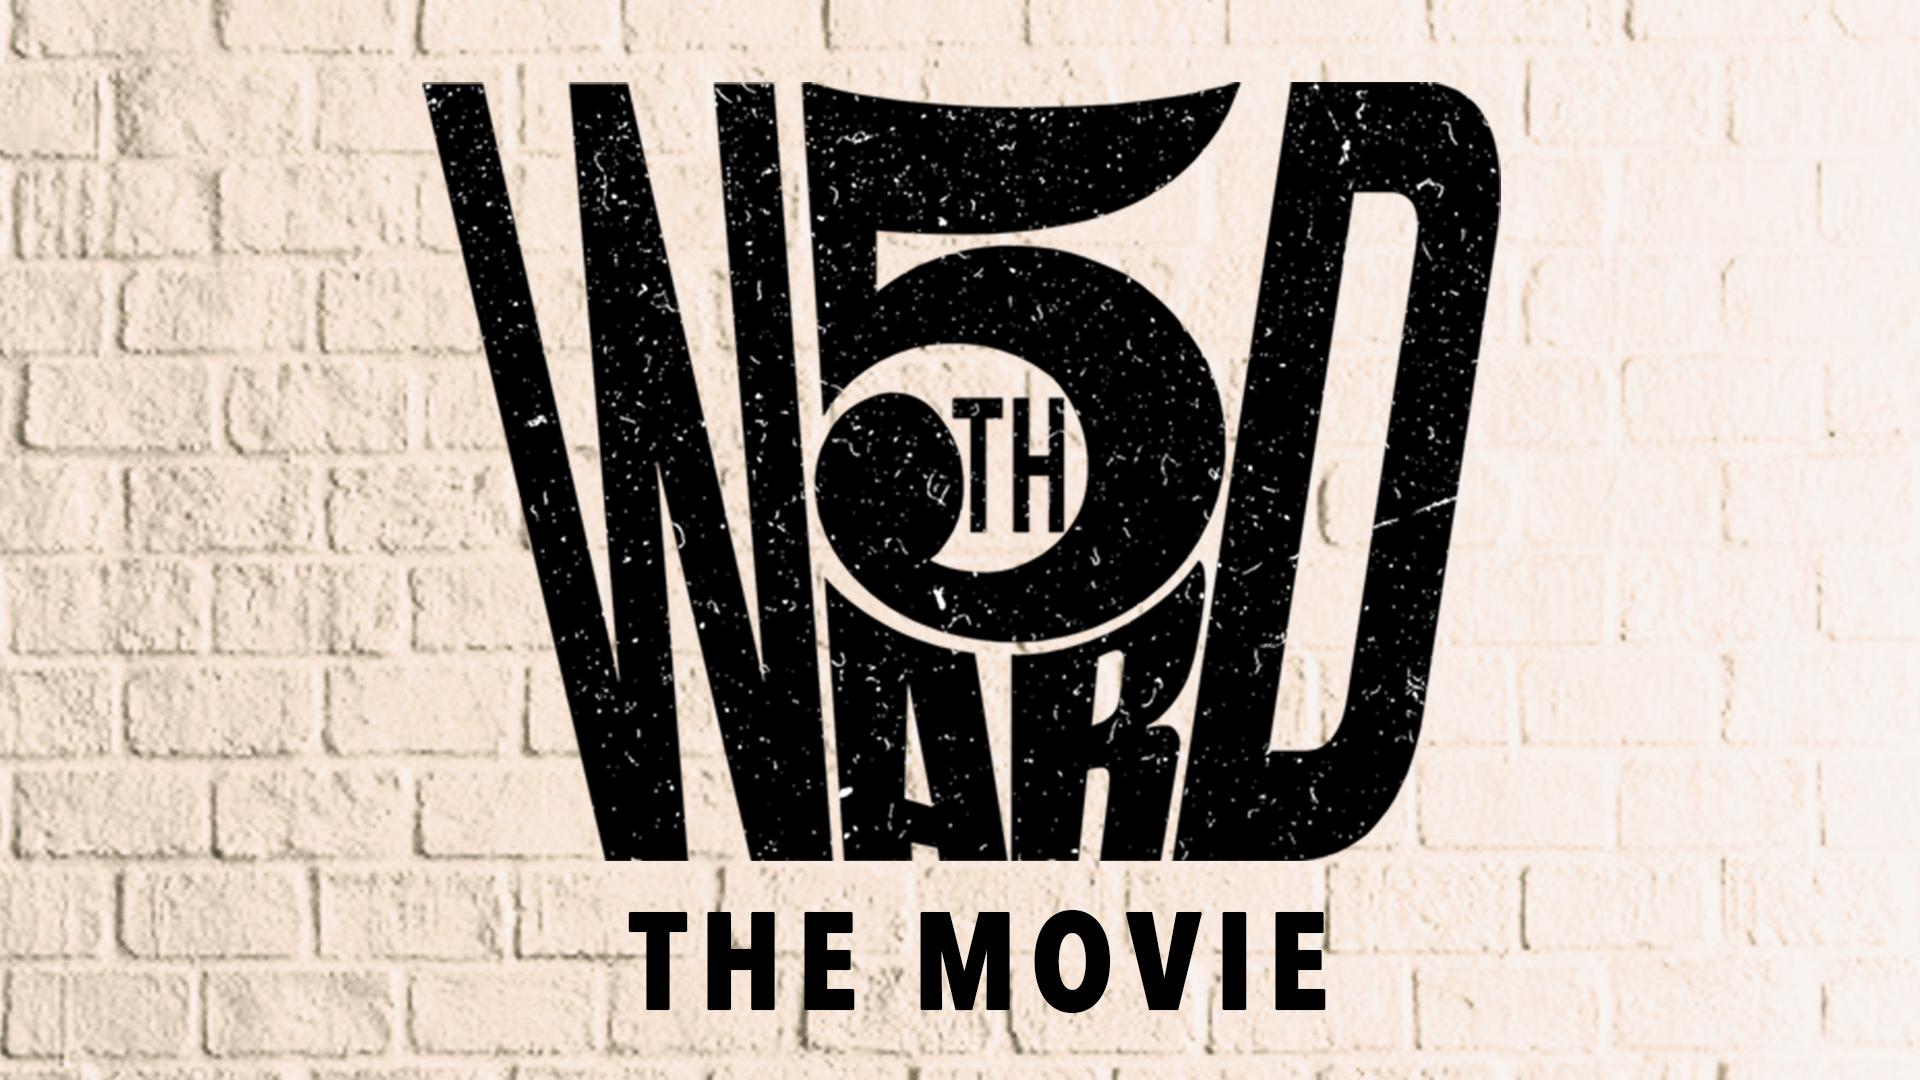 fifthwardmovie